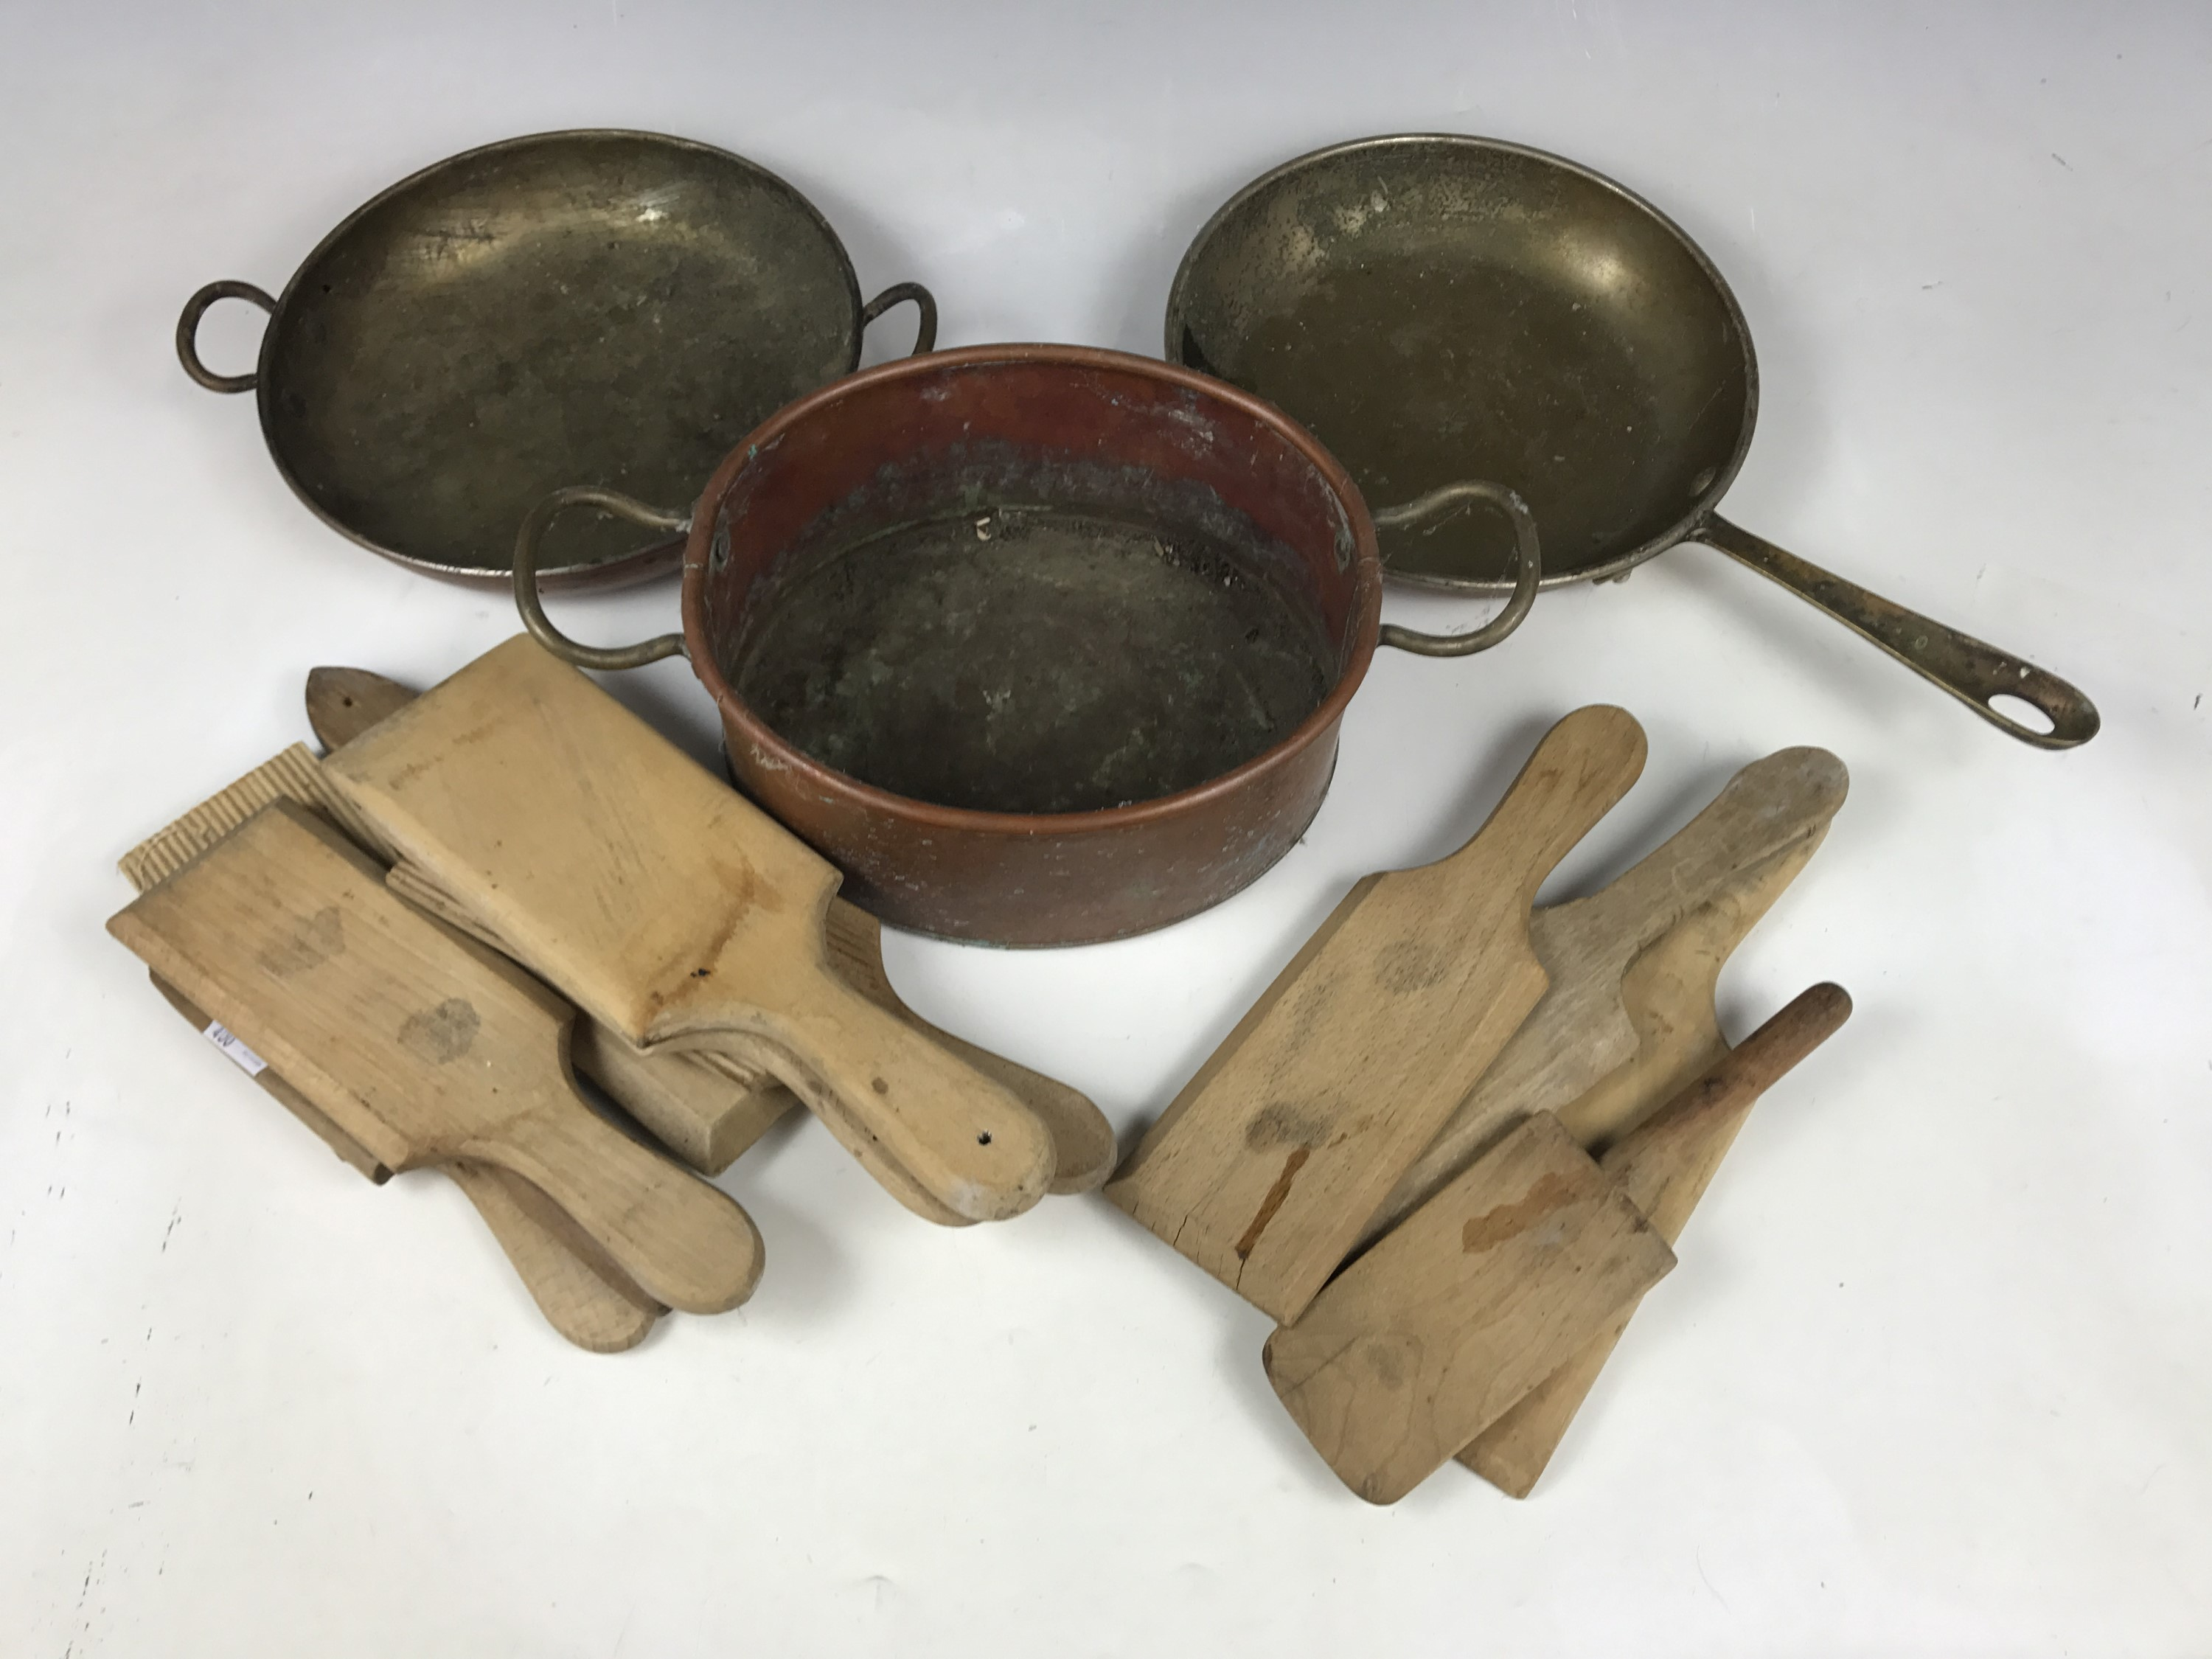 Lot 7 - Antique kitchenalia including wooden butter pats and three copper pans